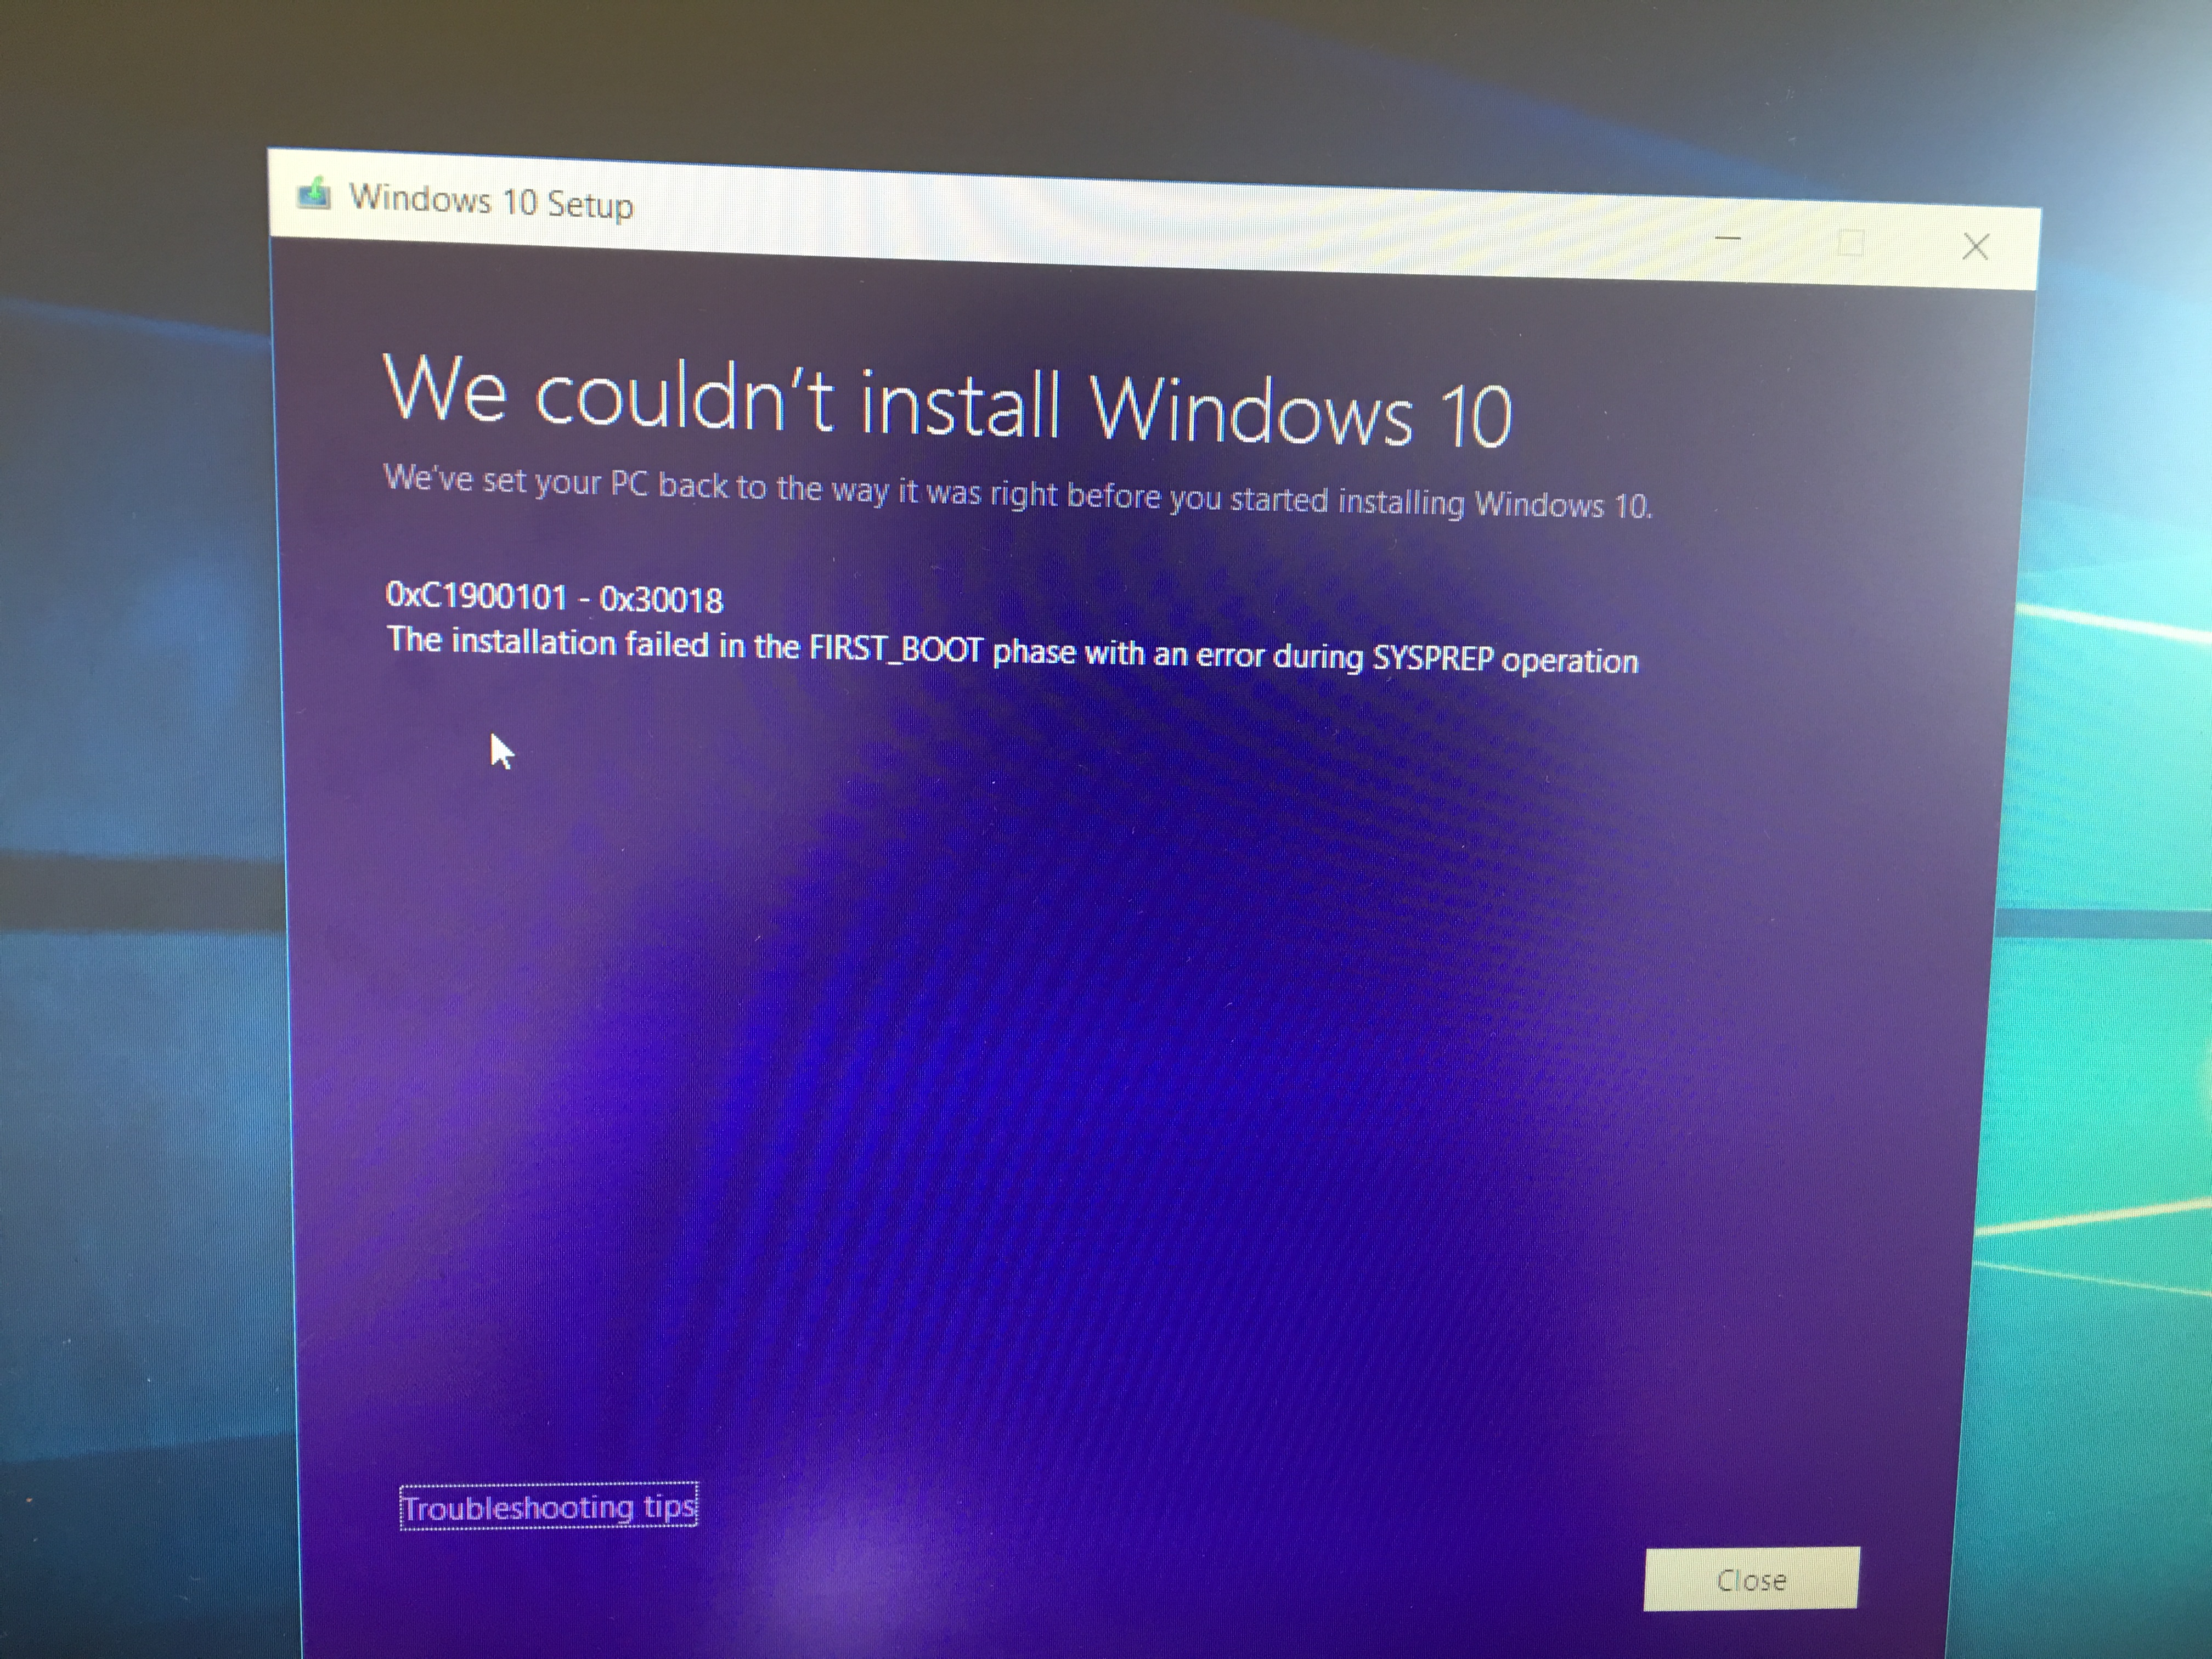 Windows 10 failed to update and stuck at 33% after reboot